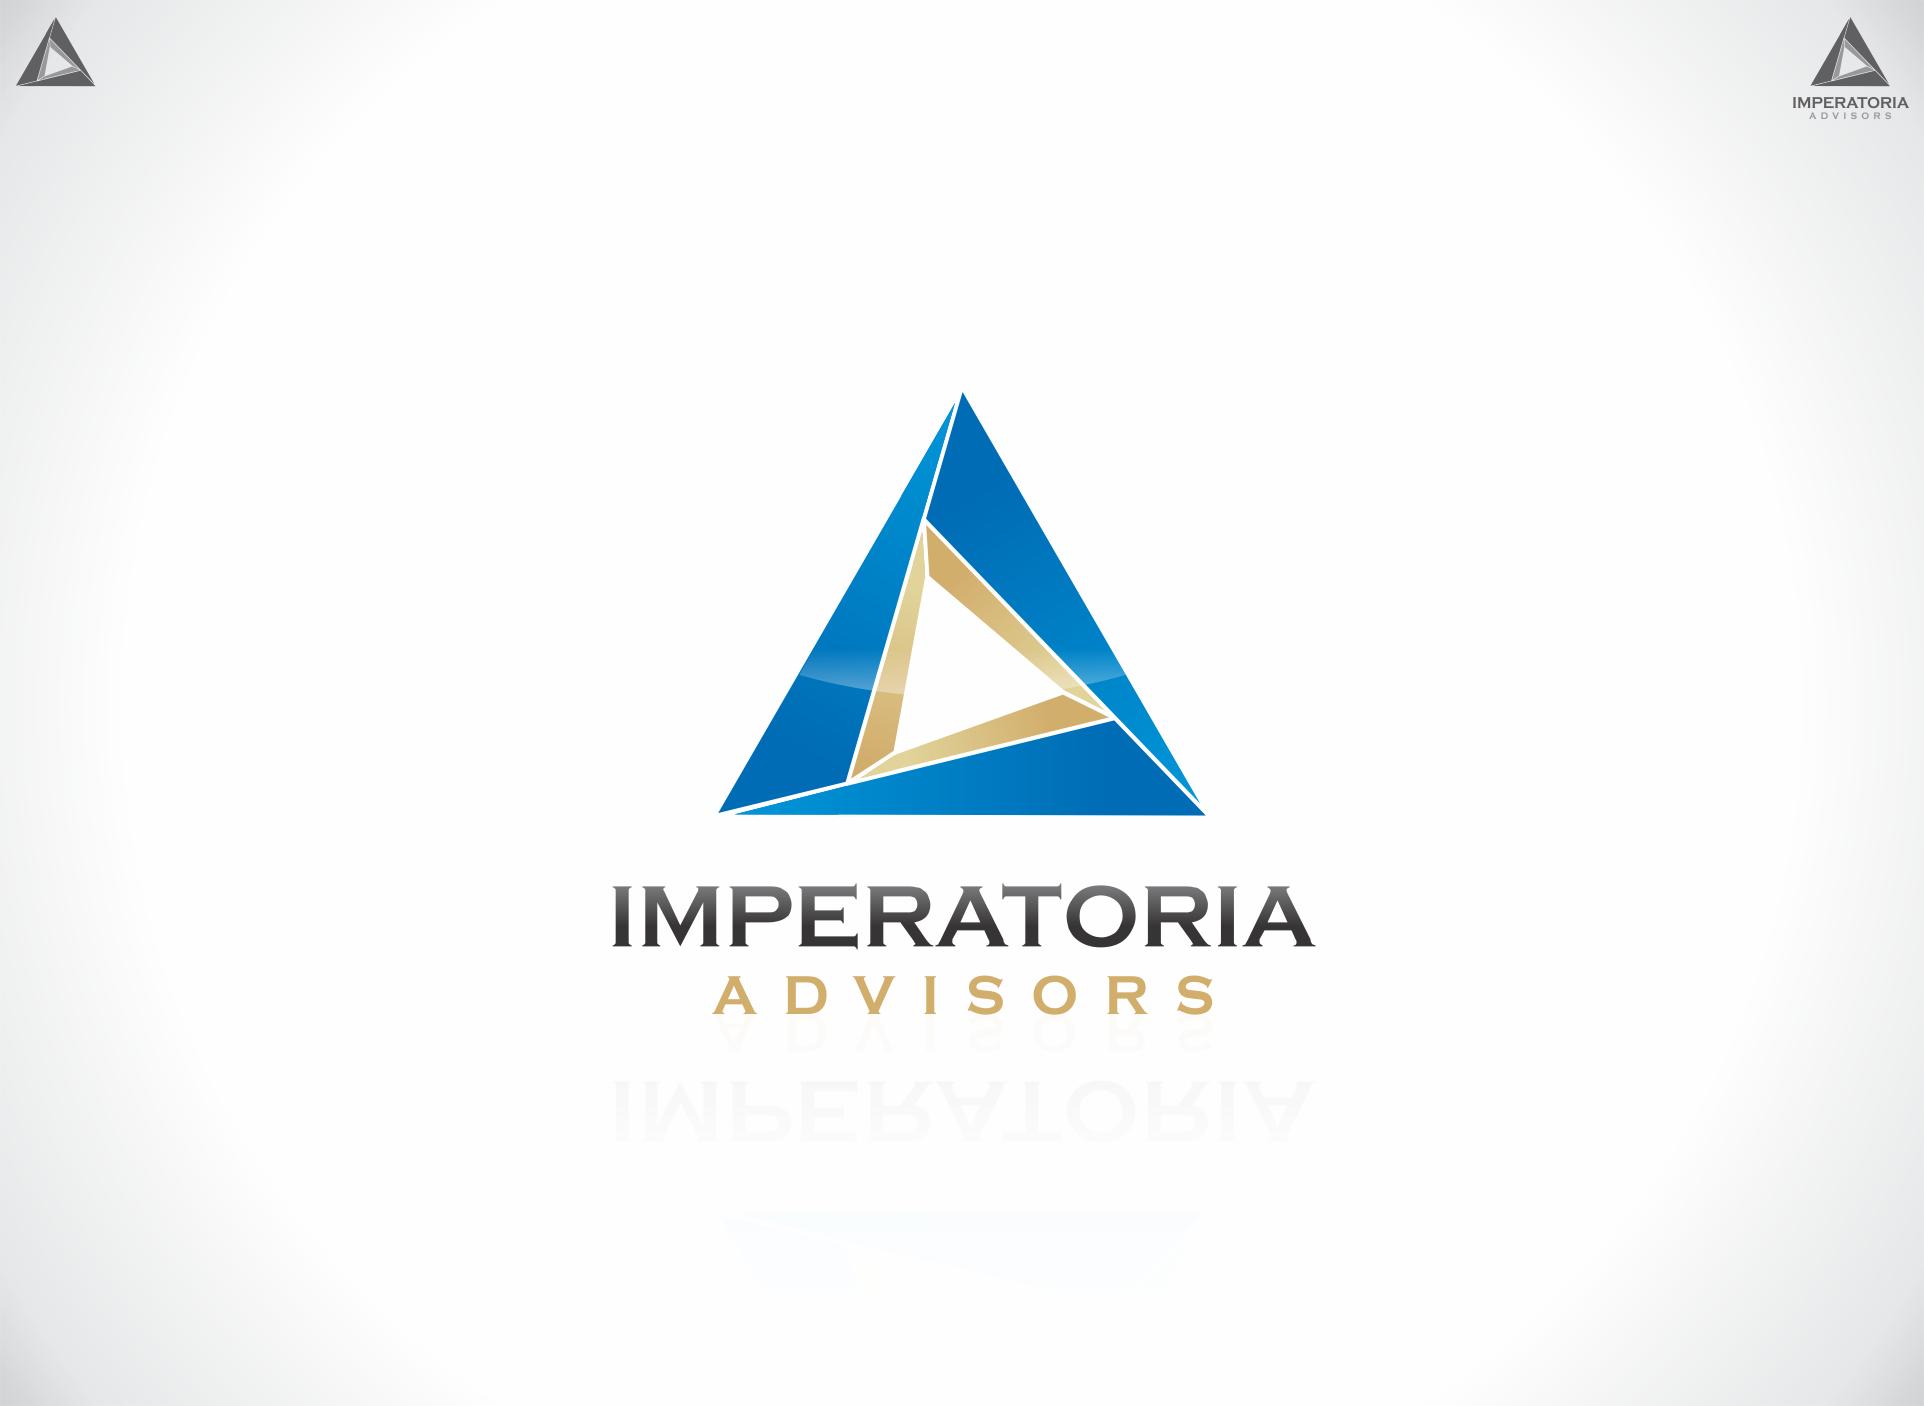 Logo Design by dandor - Entry No. 46 in the Logo Design Contest Unique Logo Design Wanted for Imperatoria Advisors.